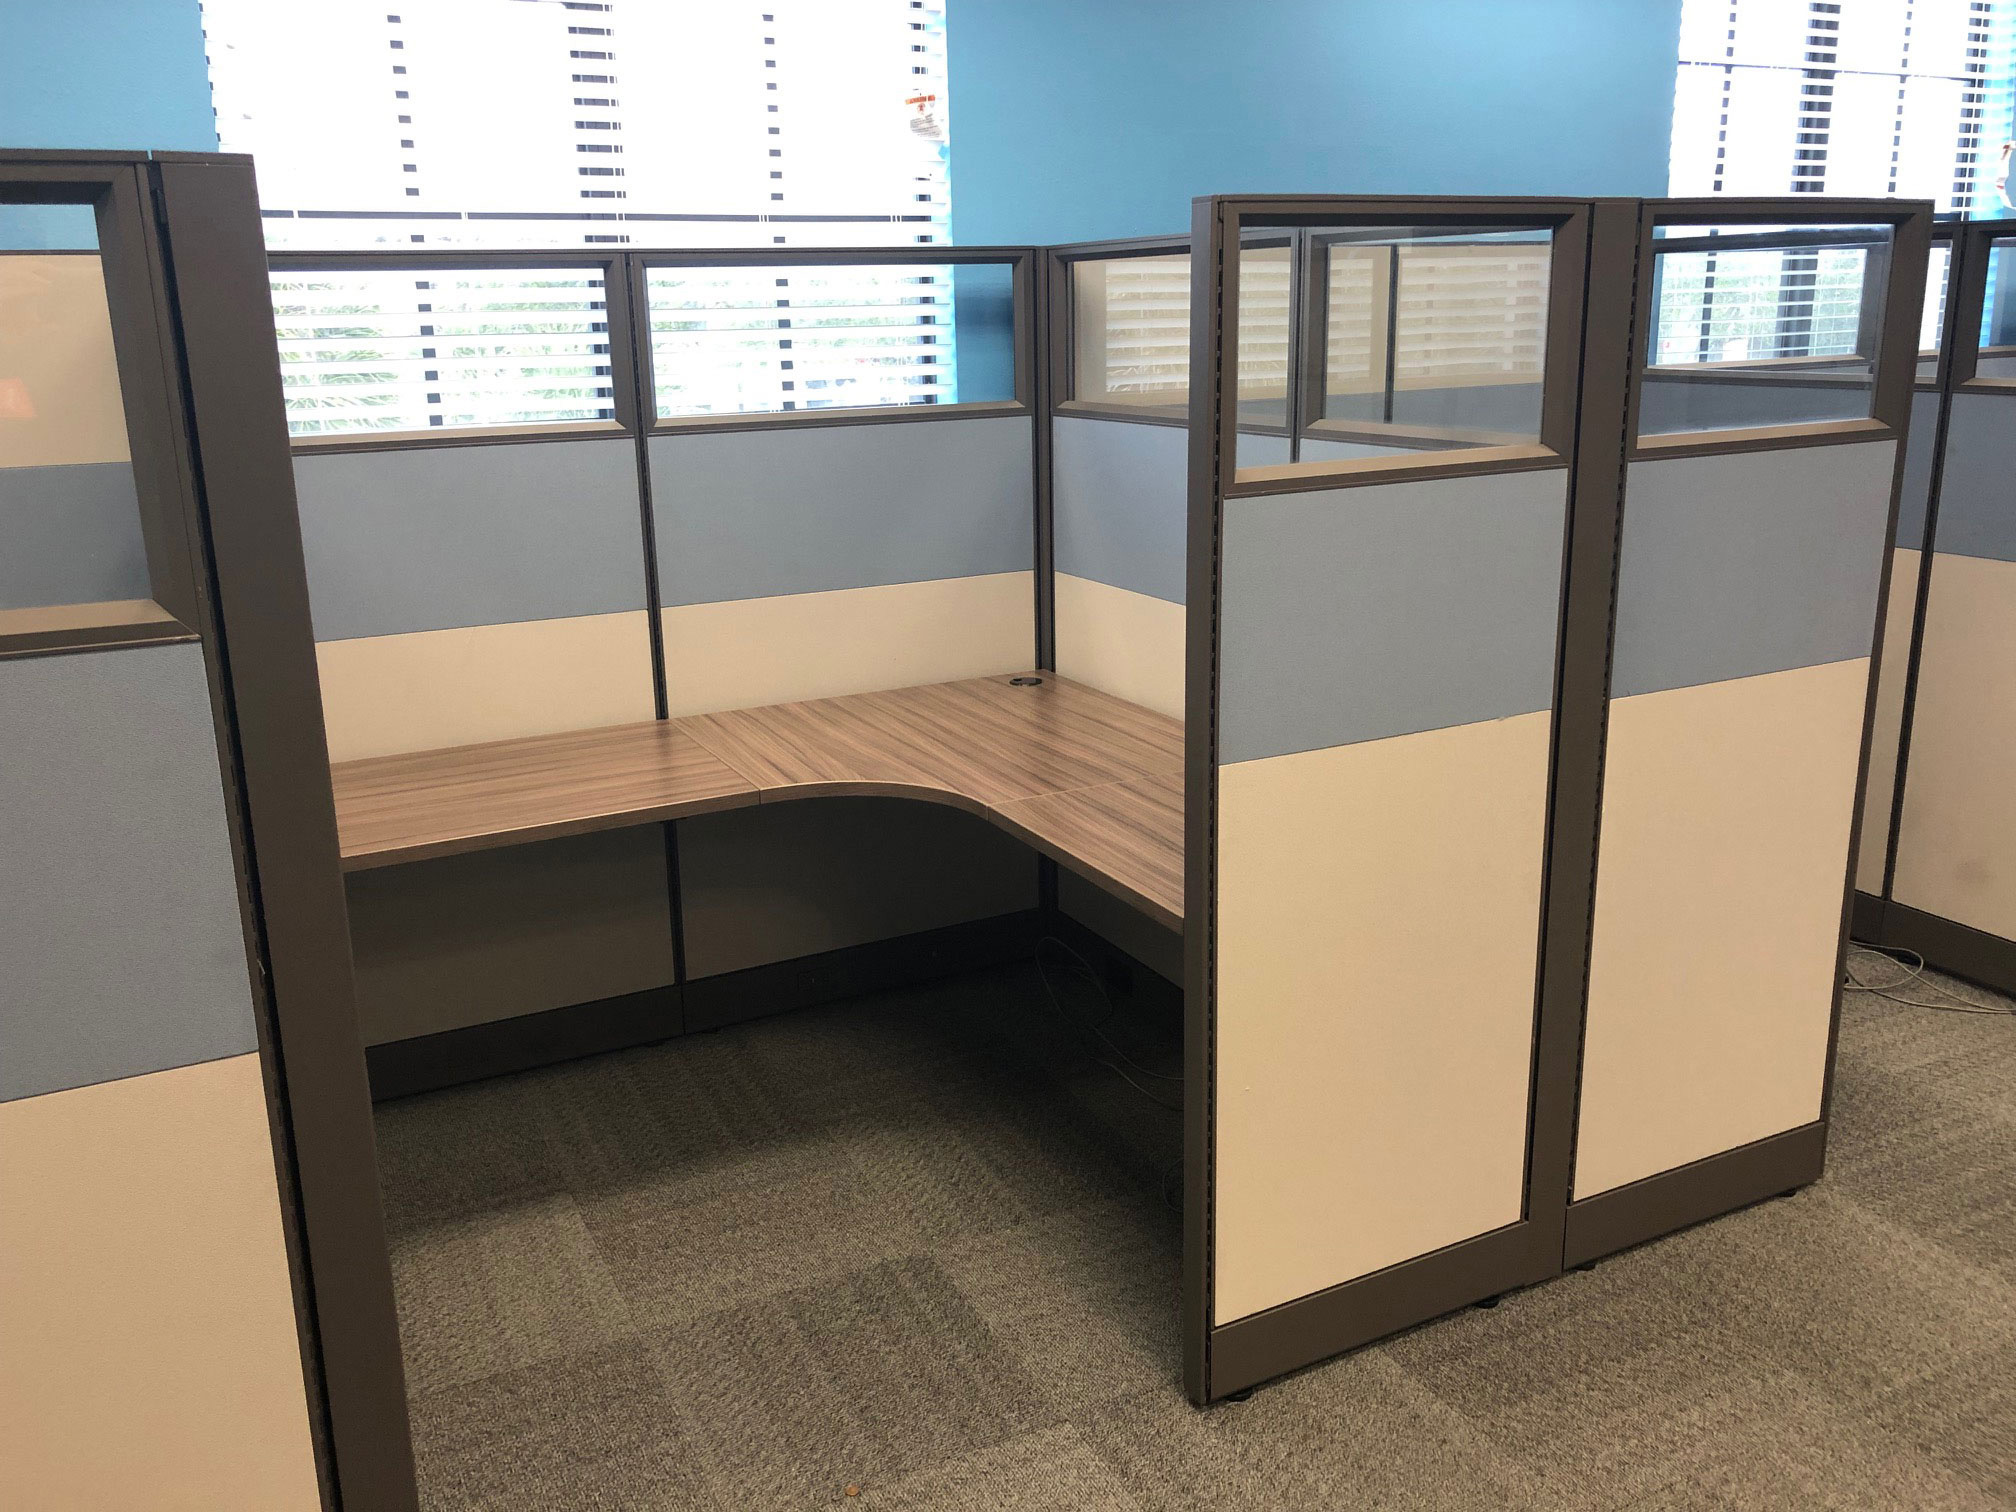 office-cubicles-for-sale-in-key-west-florida-2.jpg